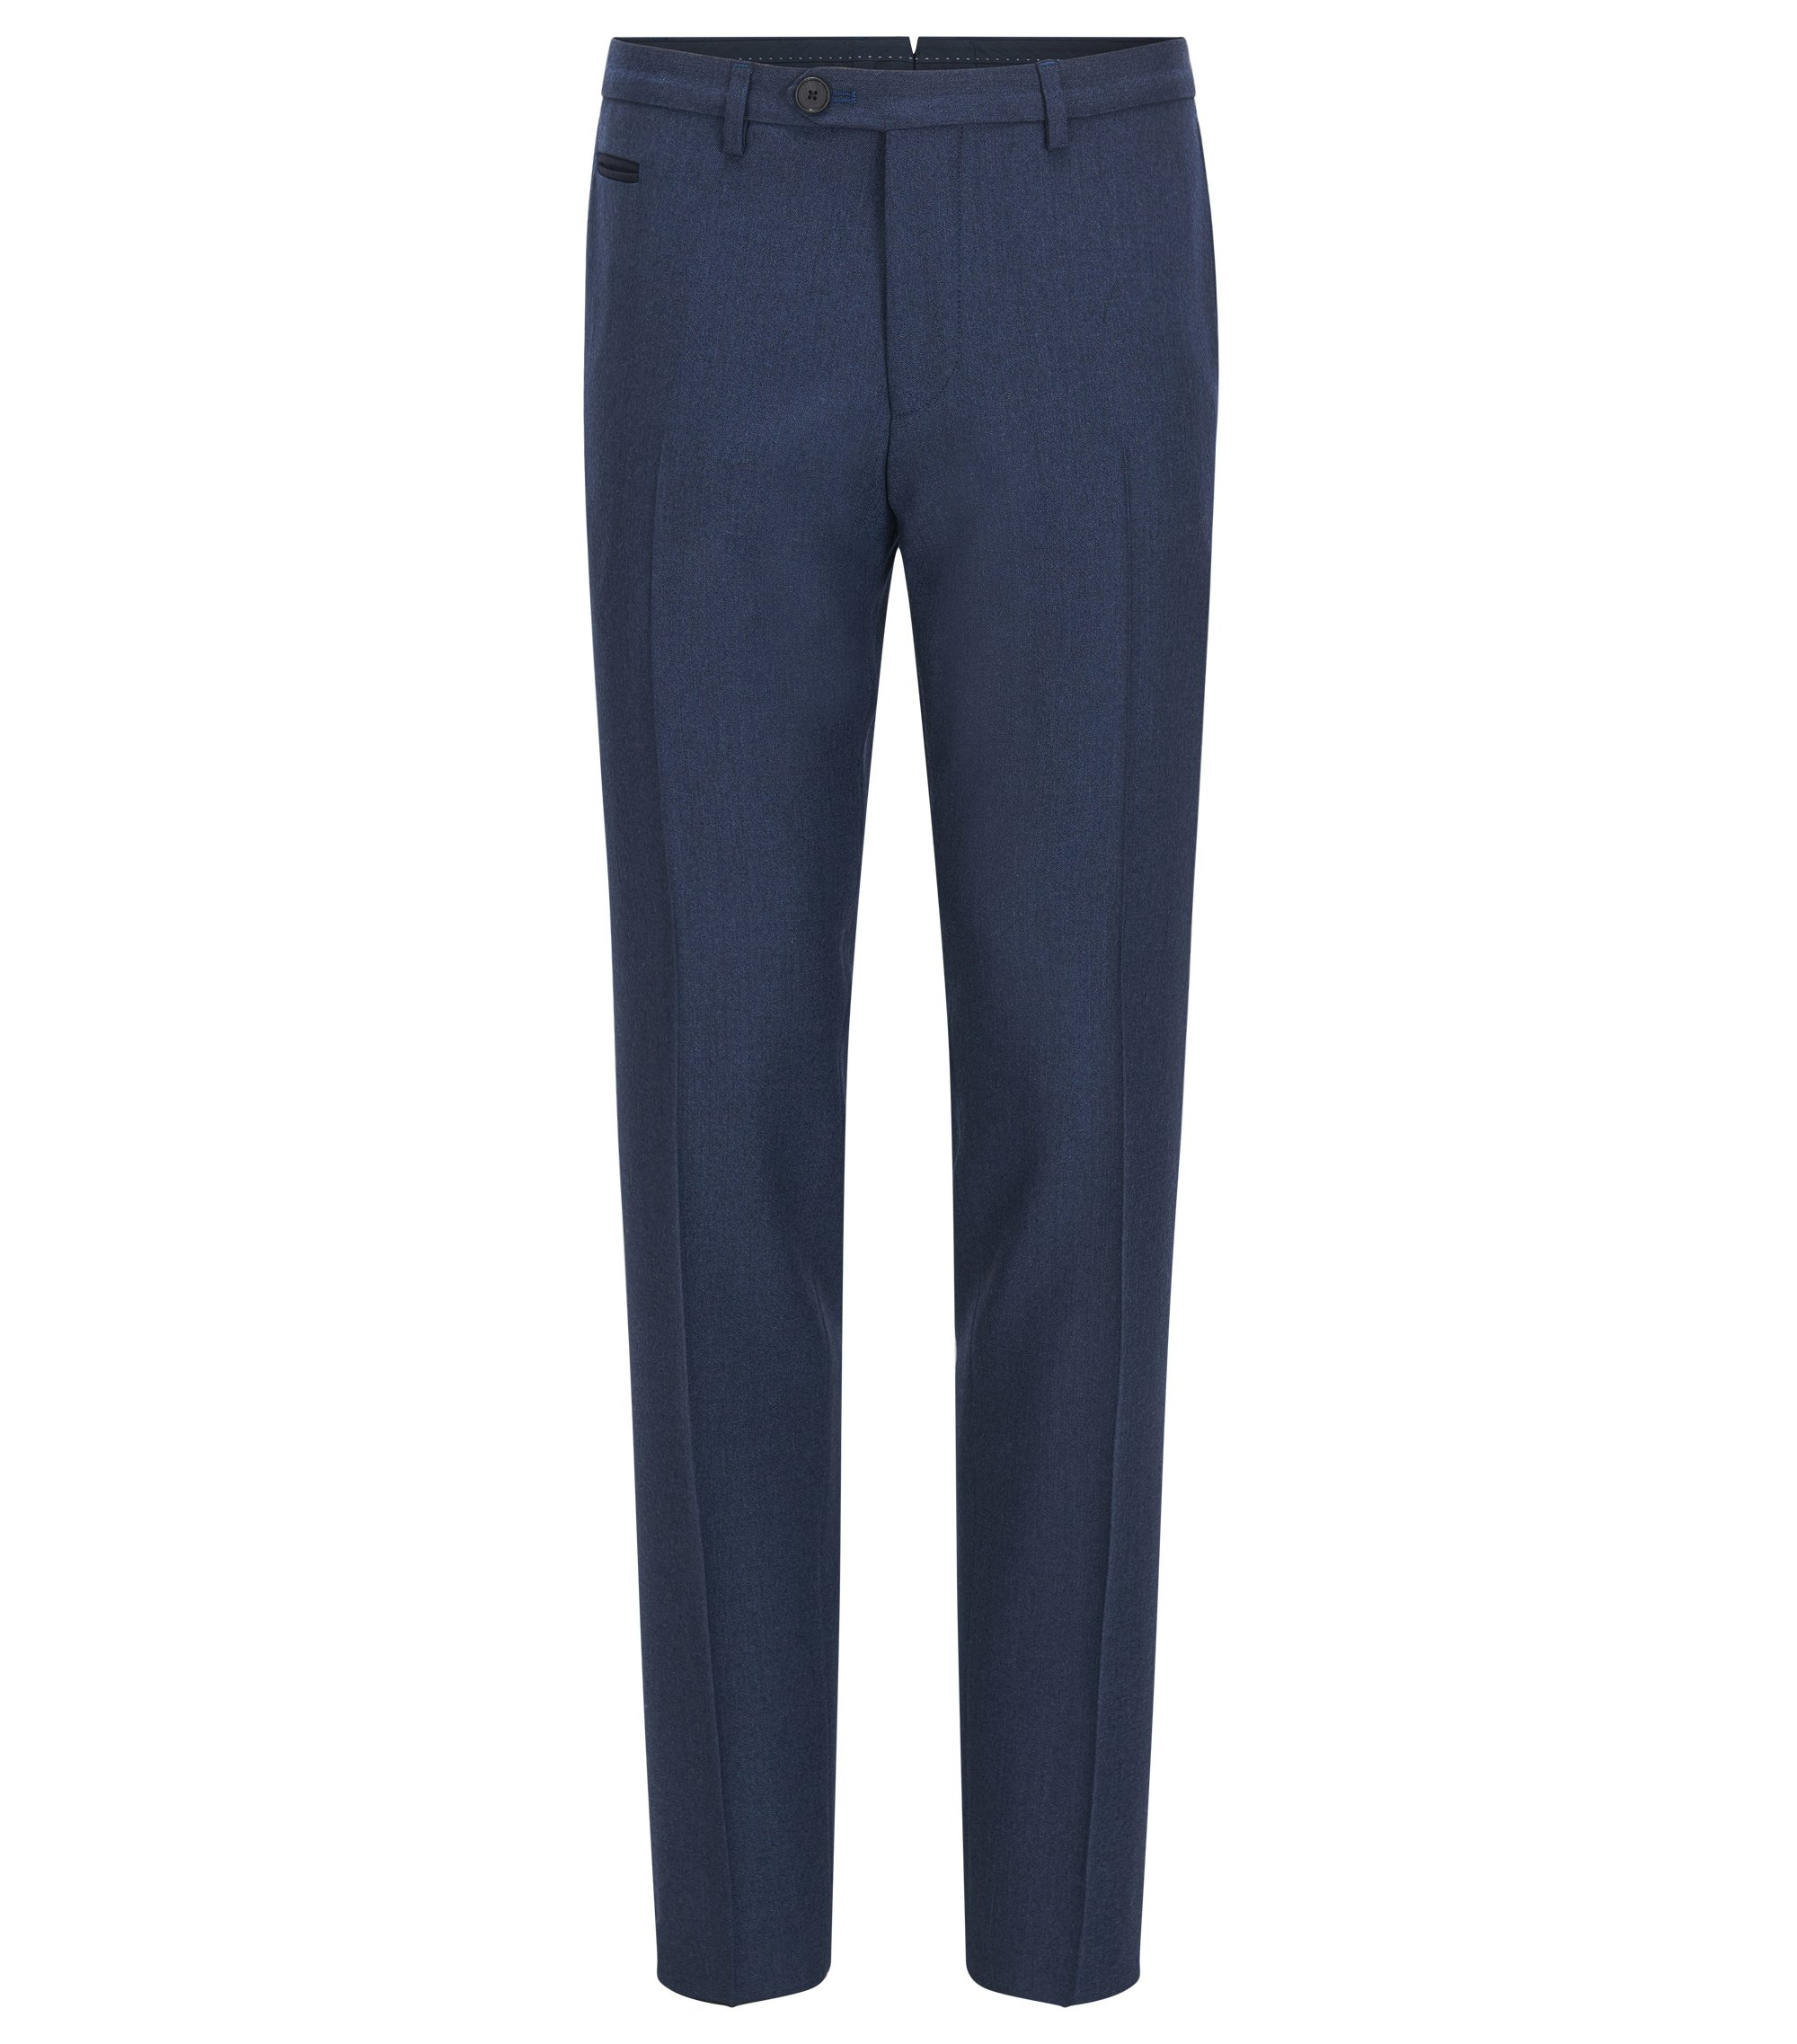 Pantaloni extra slim fit in lana vergine, Blu